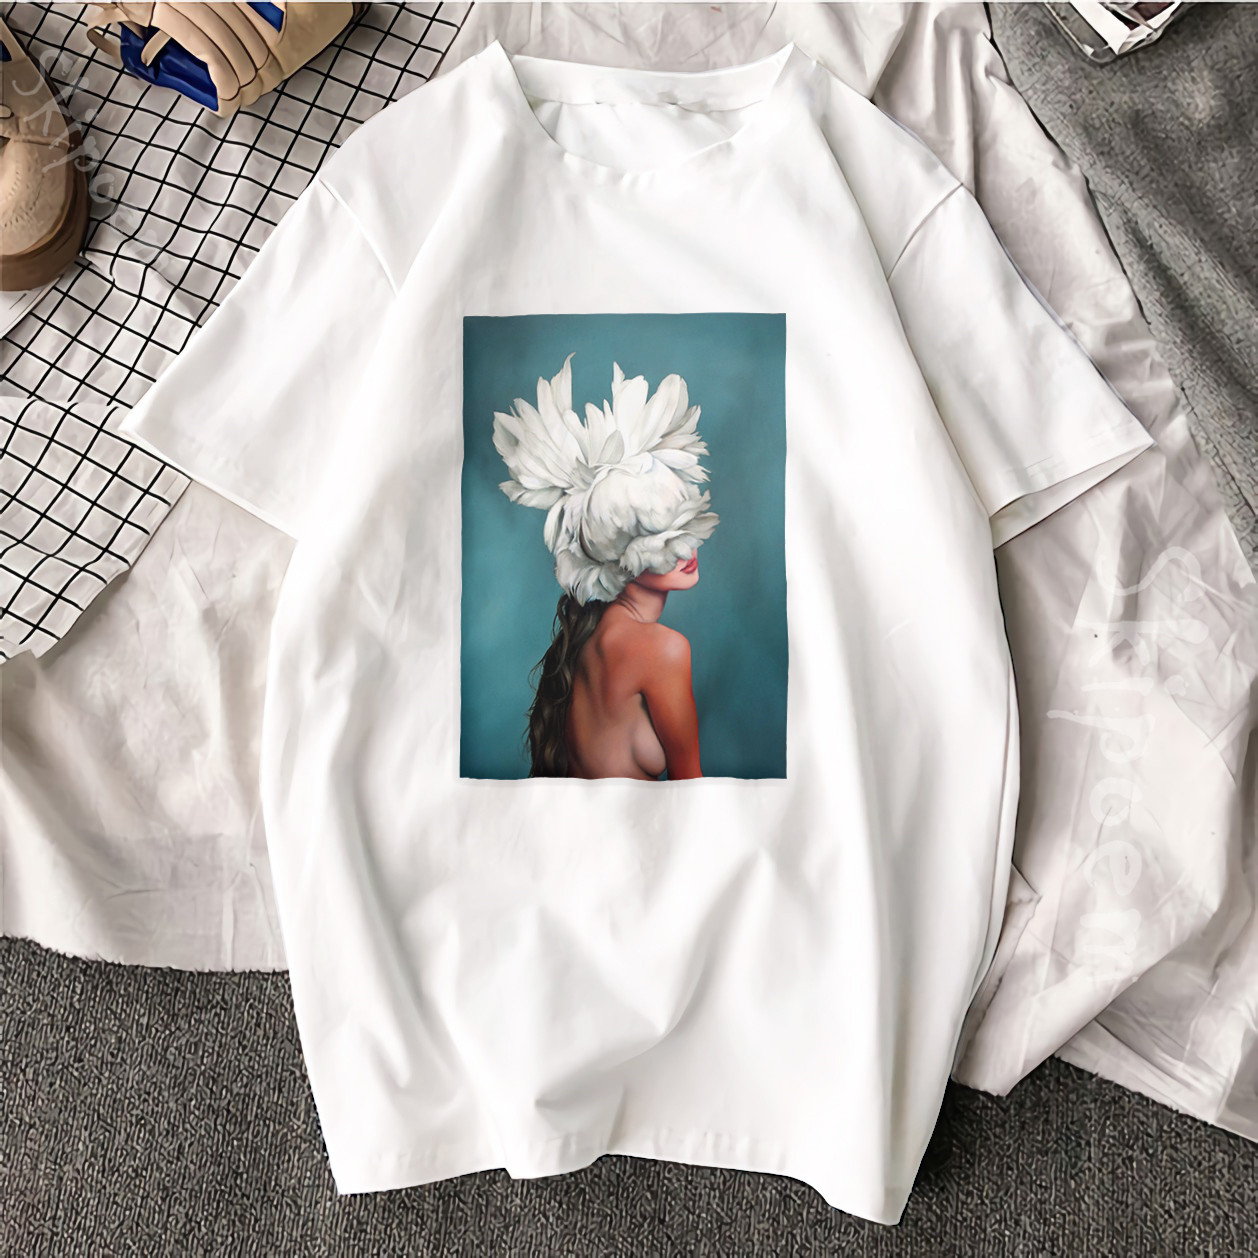 New Cotton Aesthetics T shirt Sexy Flowers Feather Printed Fashion Casual Couple T Shirt 9